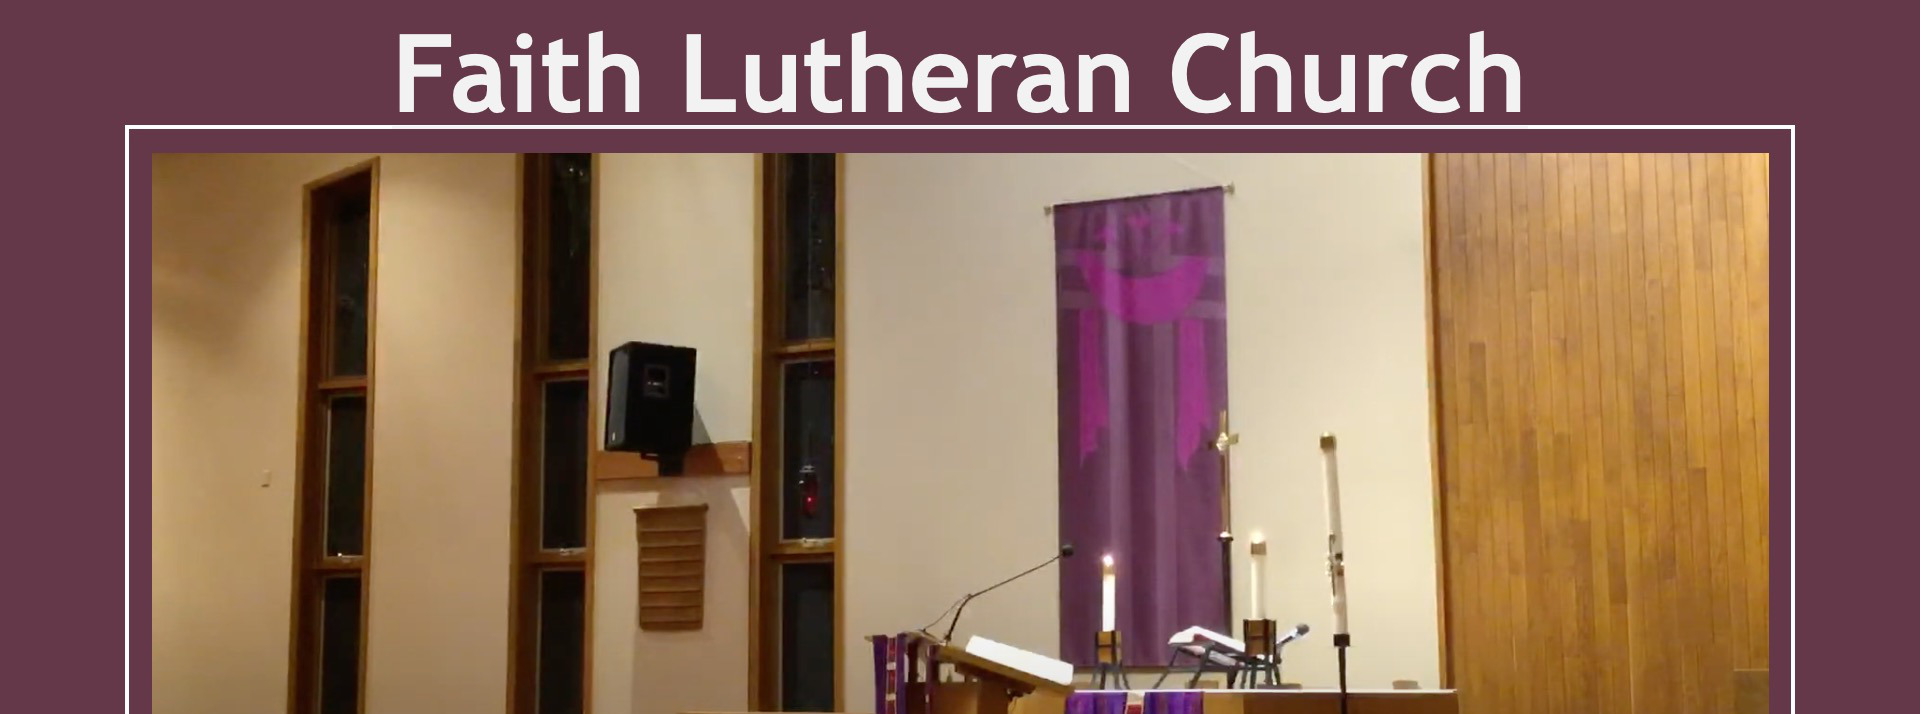 Live Stream YT or FB for the First Sunday in Lent, February 21